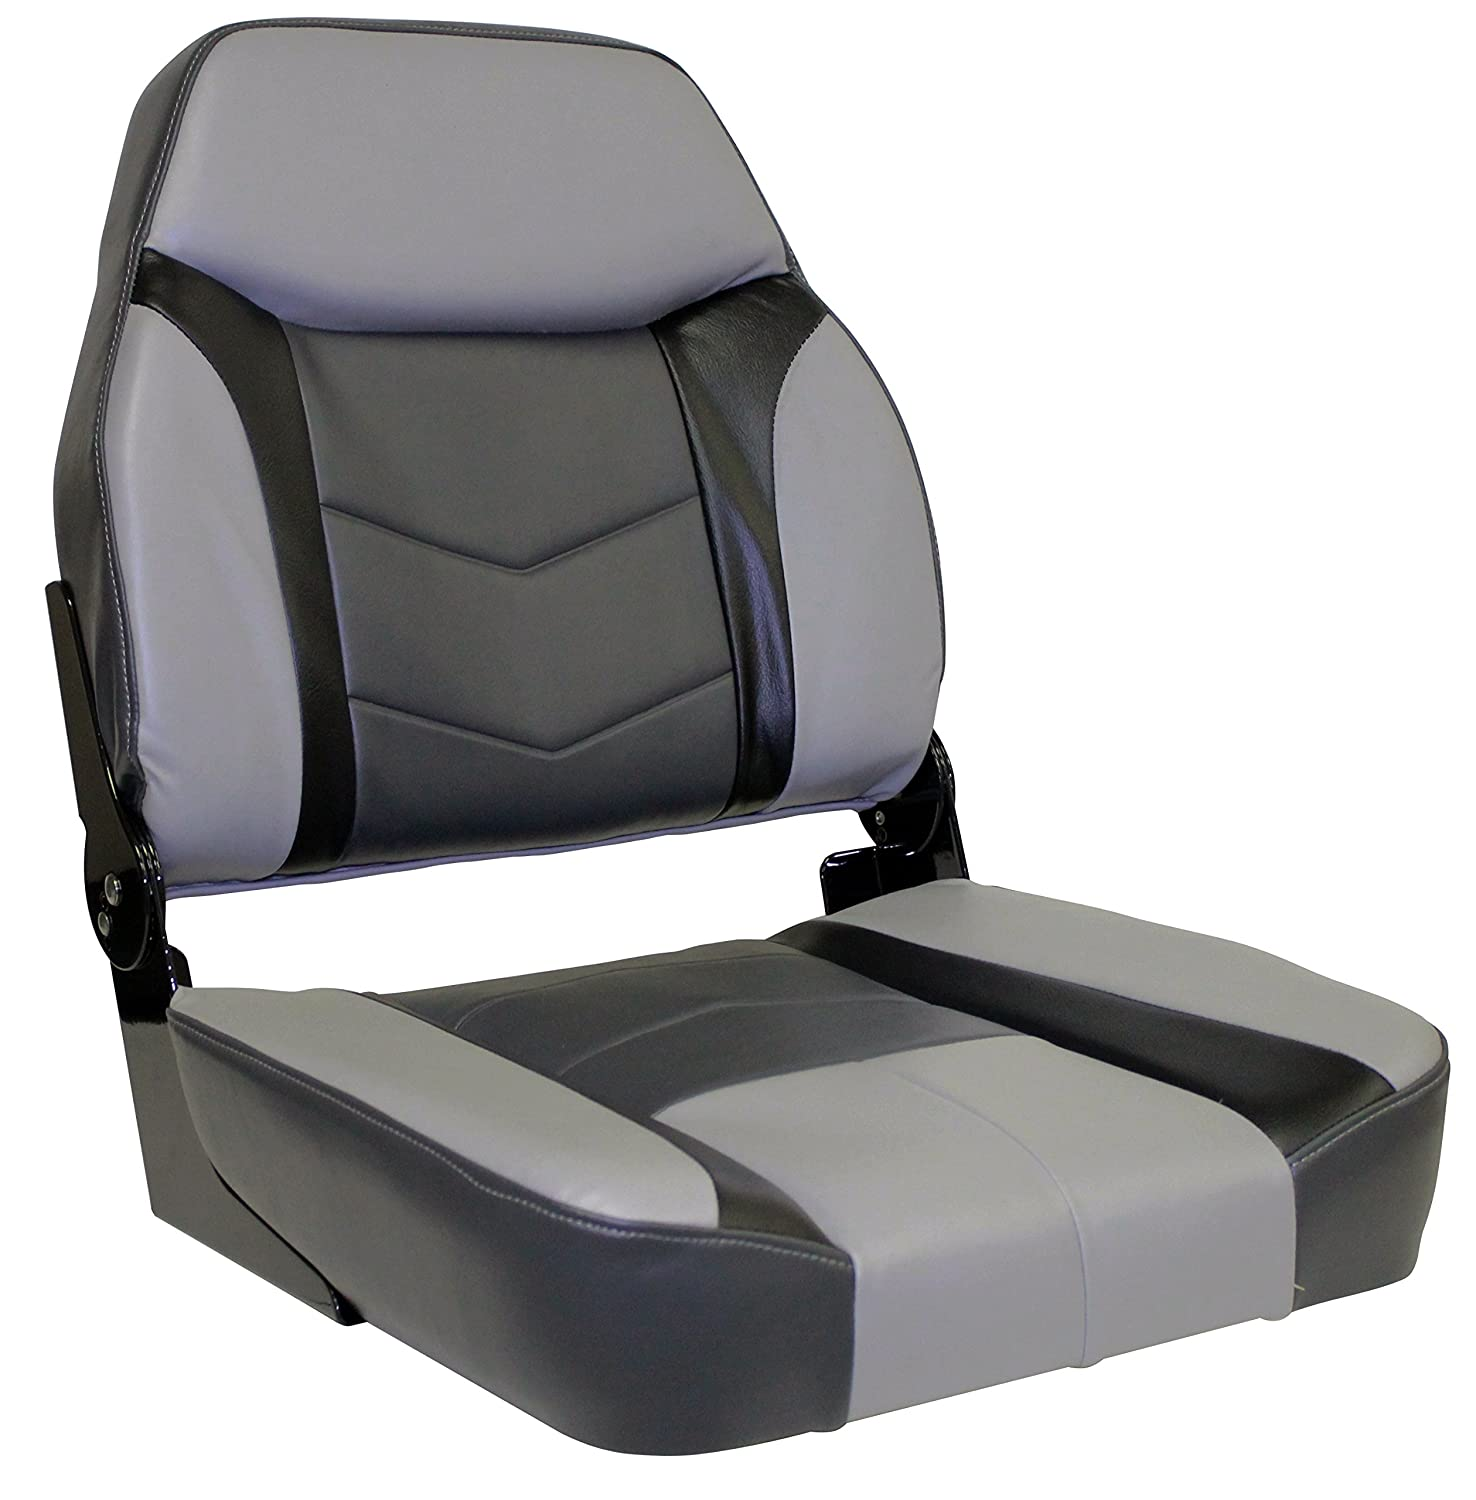 Wise 3300 Commander Premium High-Back Boat Seat Cuddy Marble//Cuddy Round Midnite//Cuddy Charcoal The Wise Company 3300-840